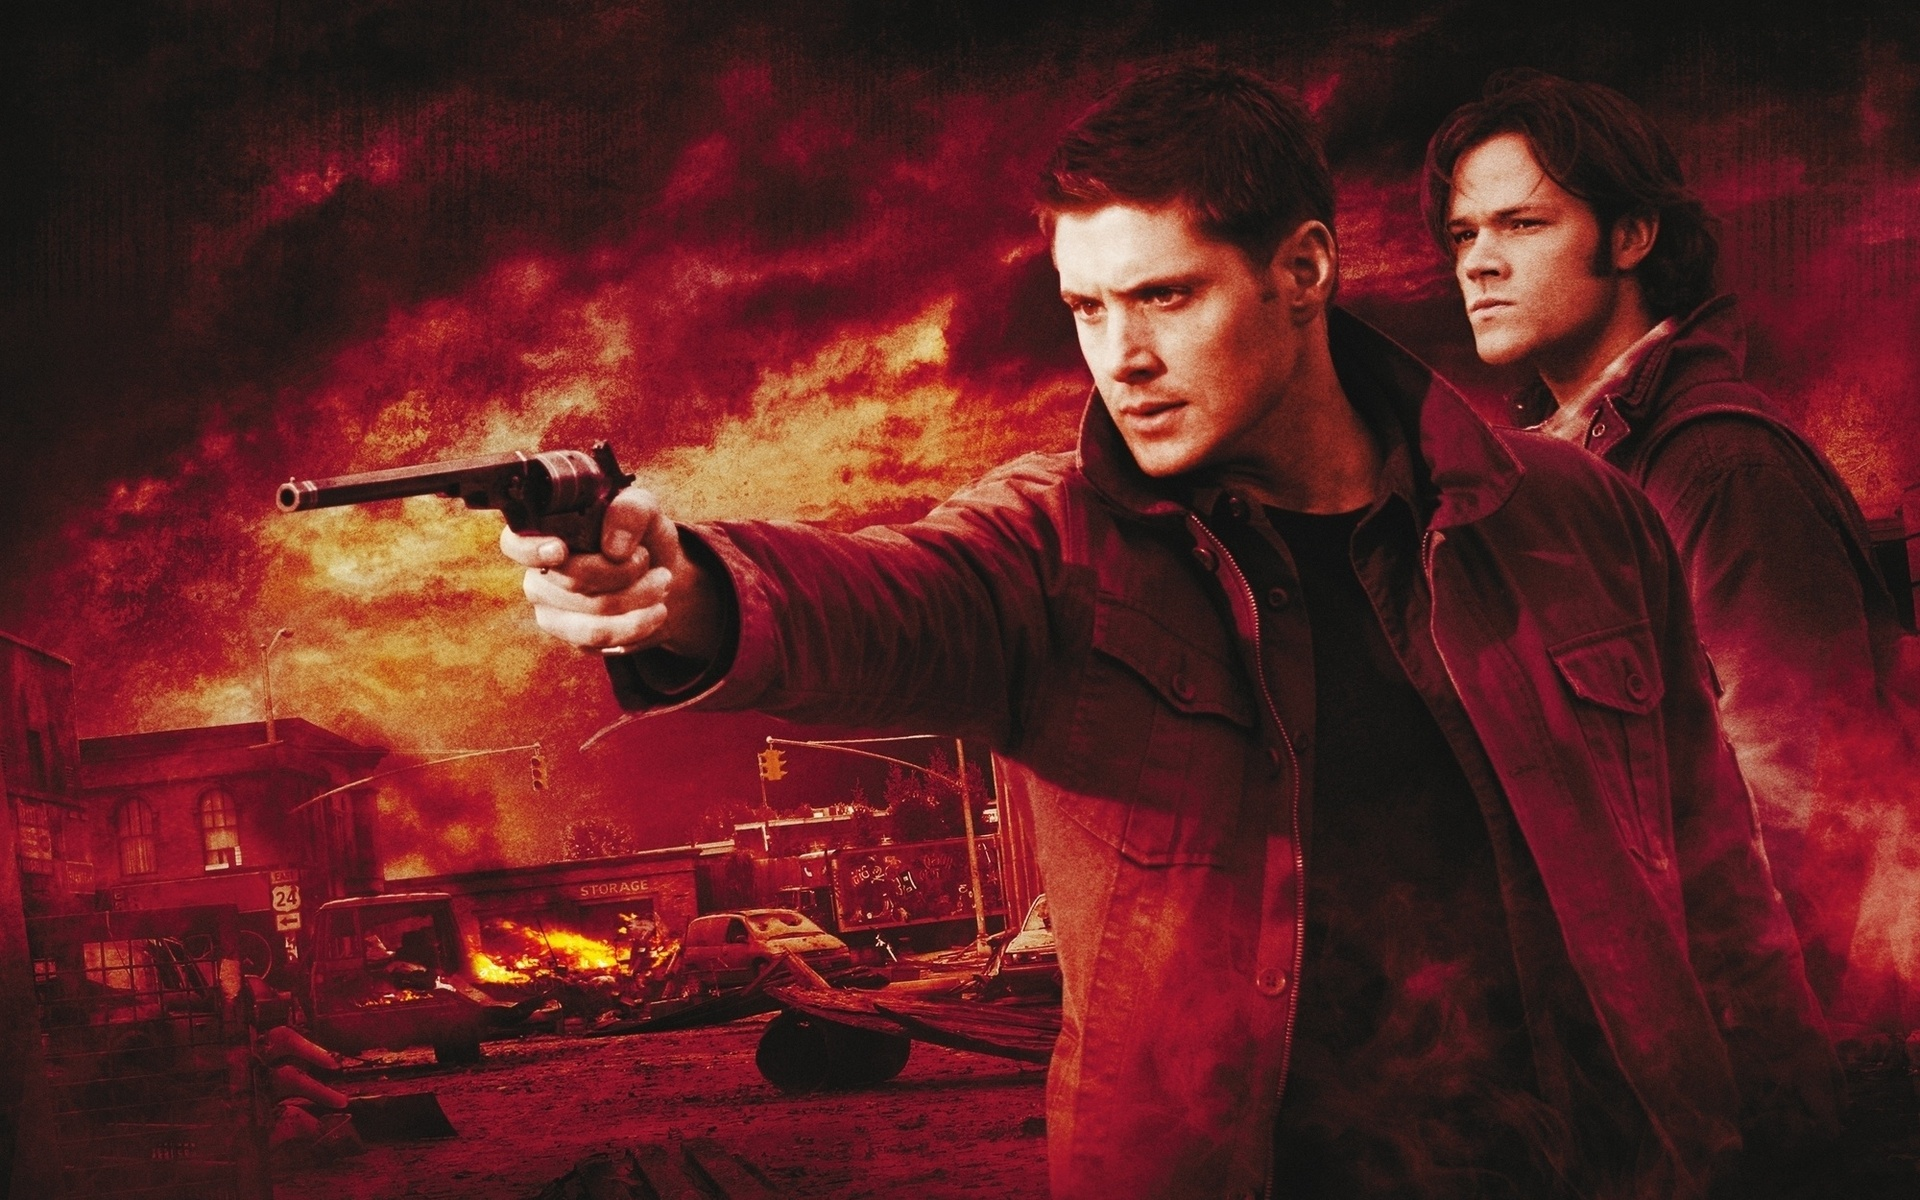 Supernatural Wallpaper 20560 1920x1200 px HDWallSourcecom